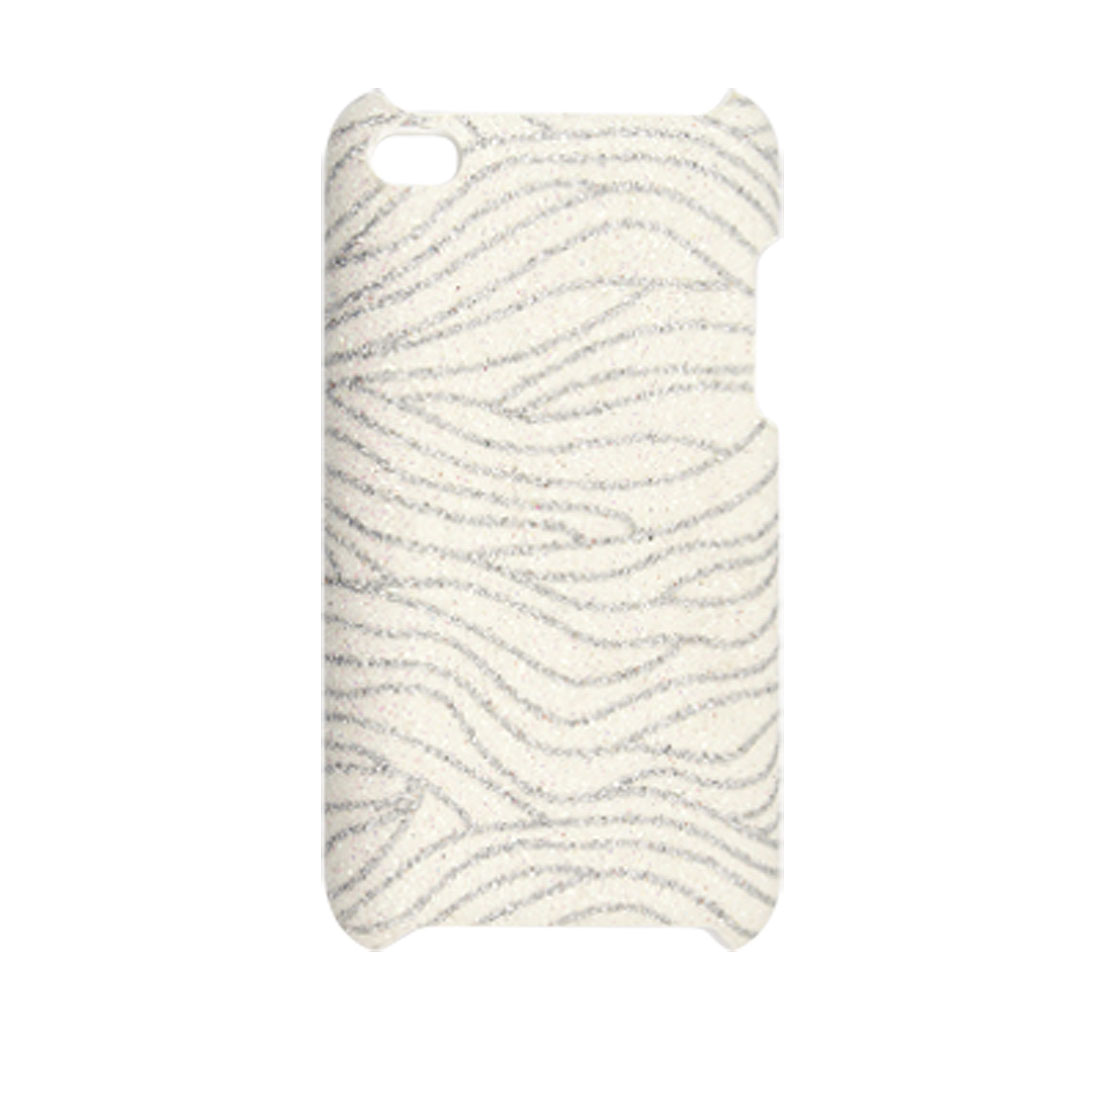 Gray Contour Line Glittery Back Cover for iPod Touch 4